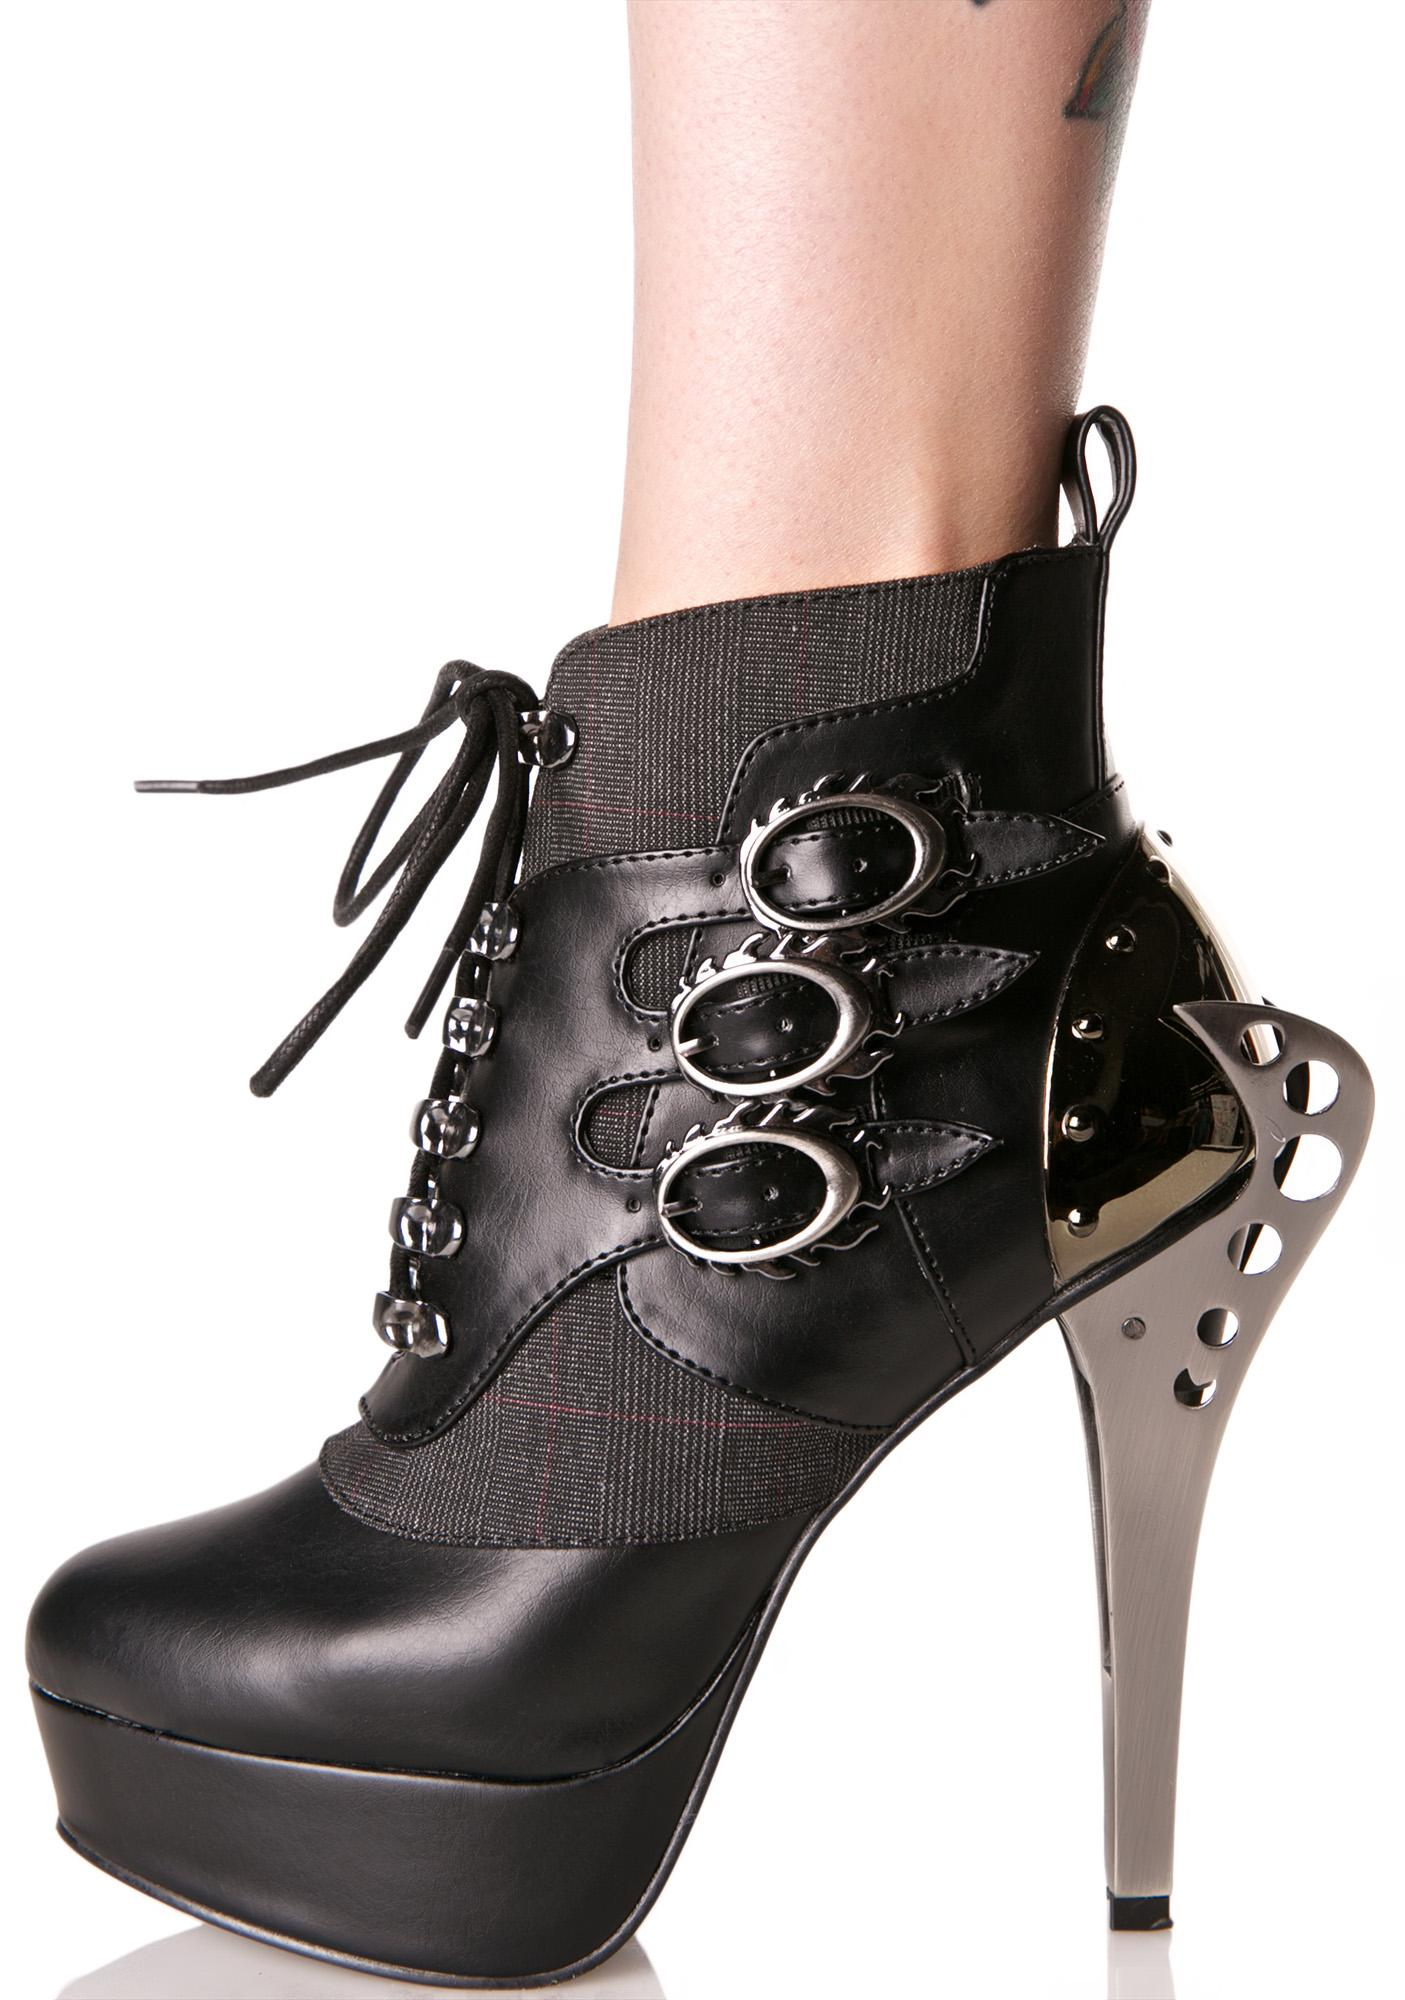 Hades Footwear Nemo Heeled Booties